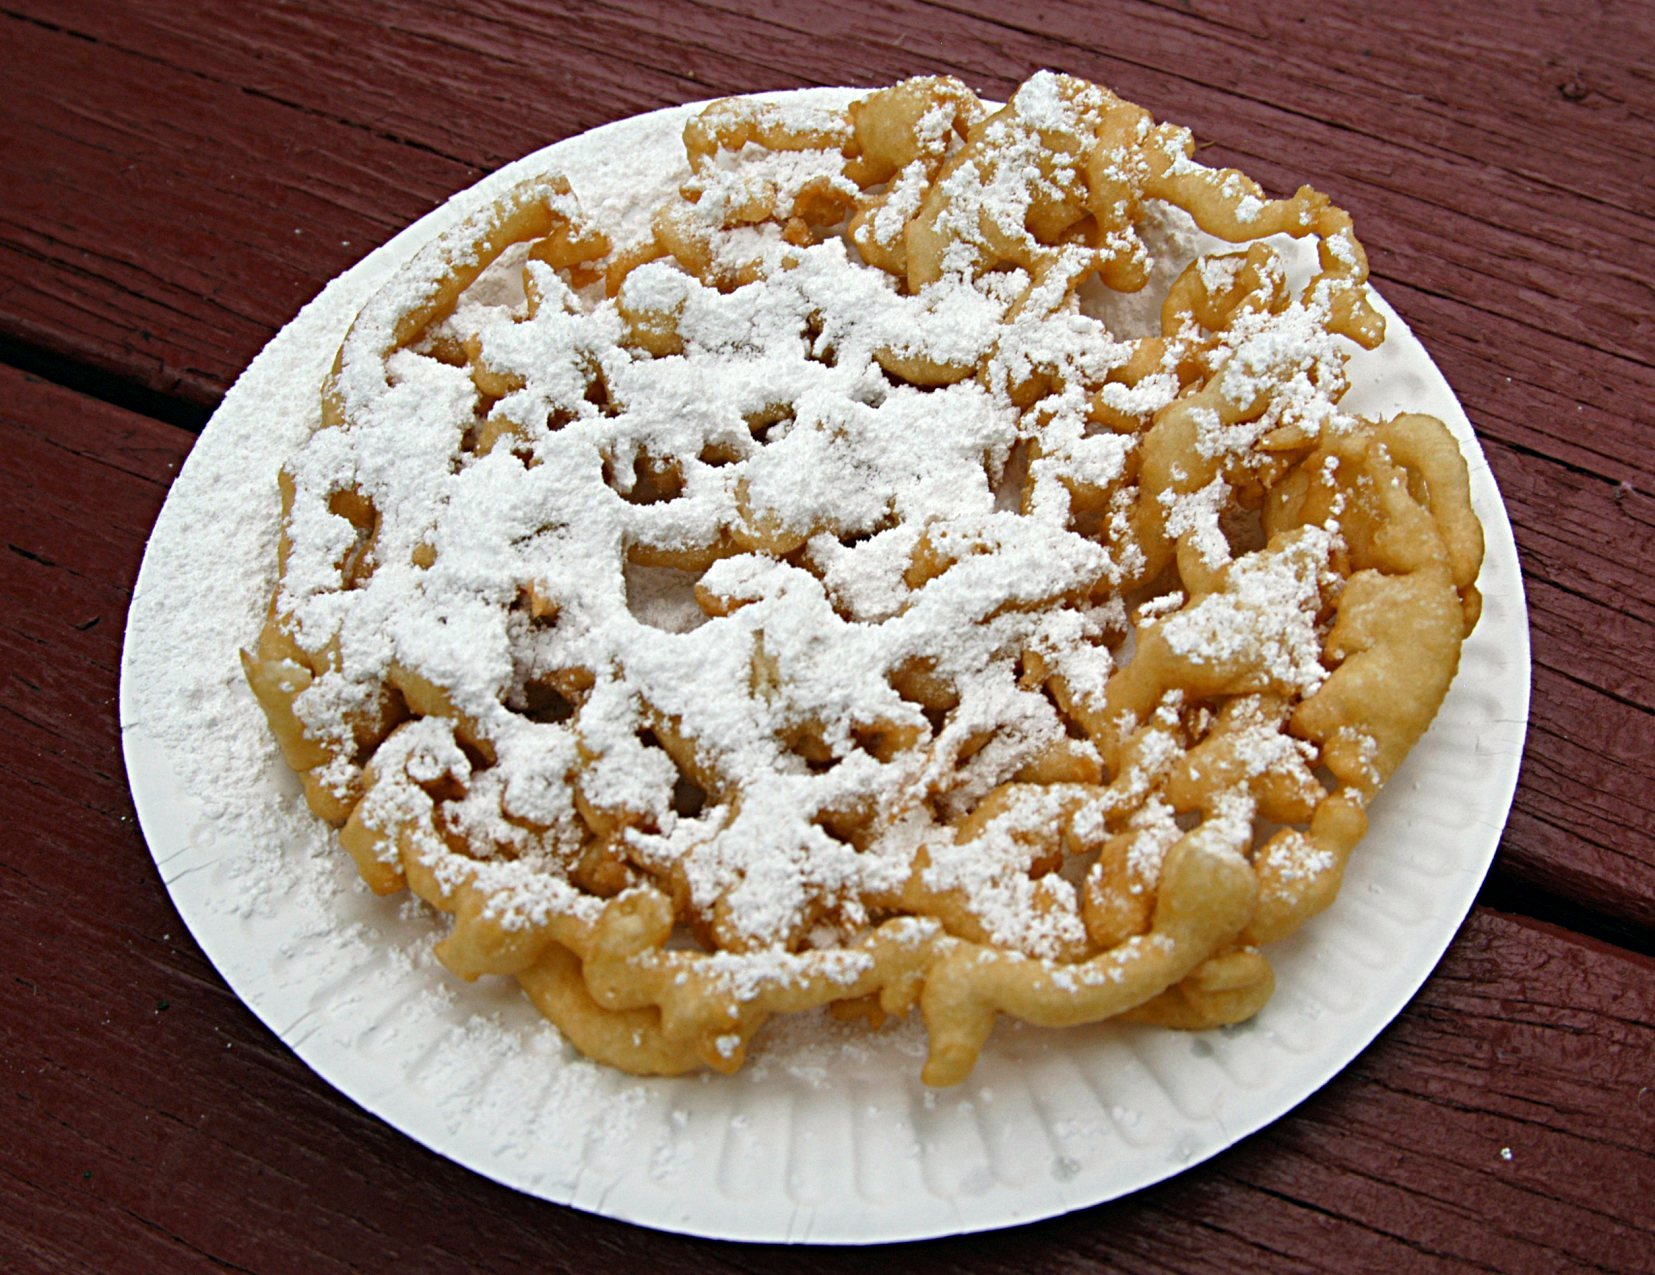 File:Funnel cake 20040821 172200 1.1655x1275.jpg - Wikipedia, the free ...